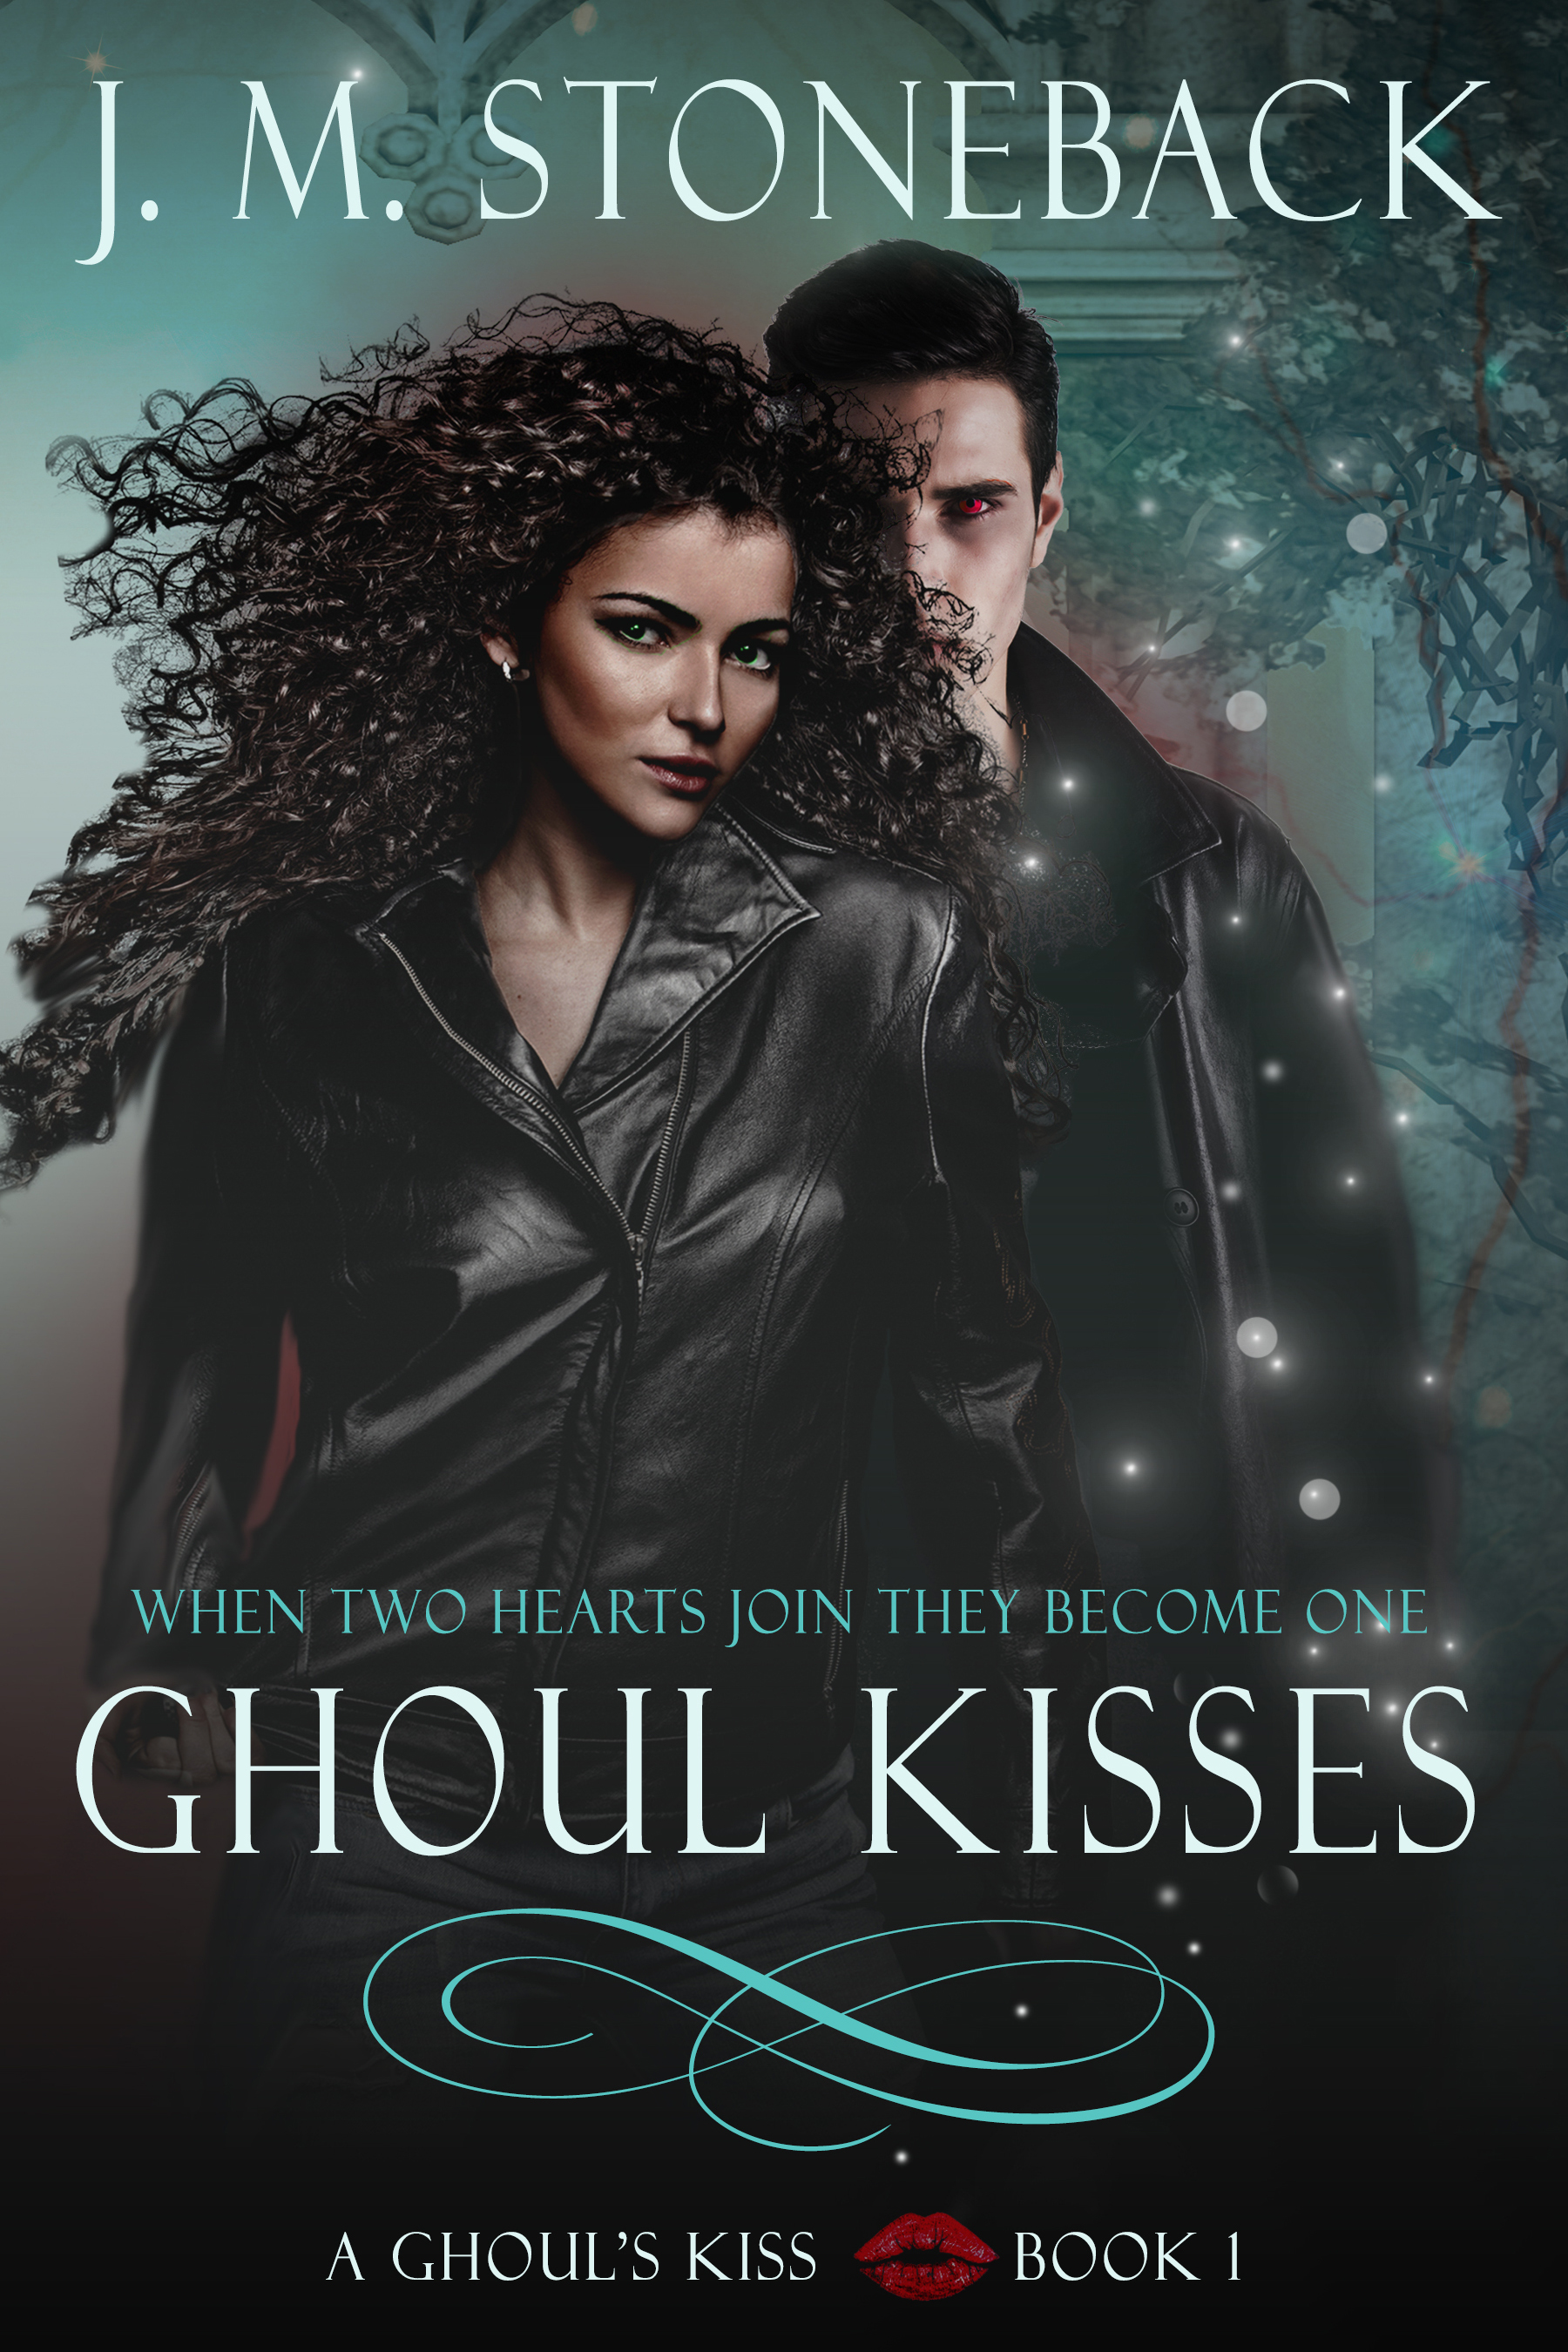 A Ghoul's Kiss